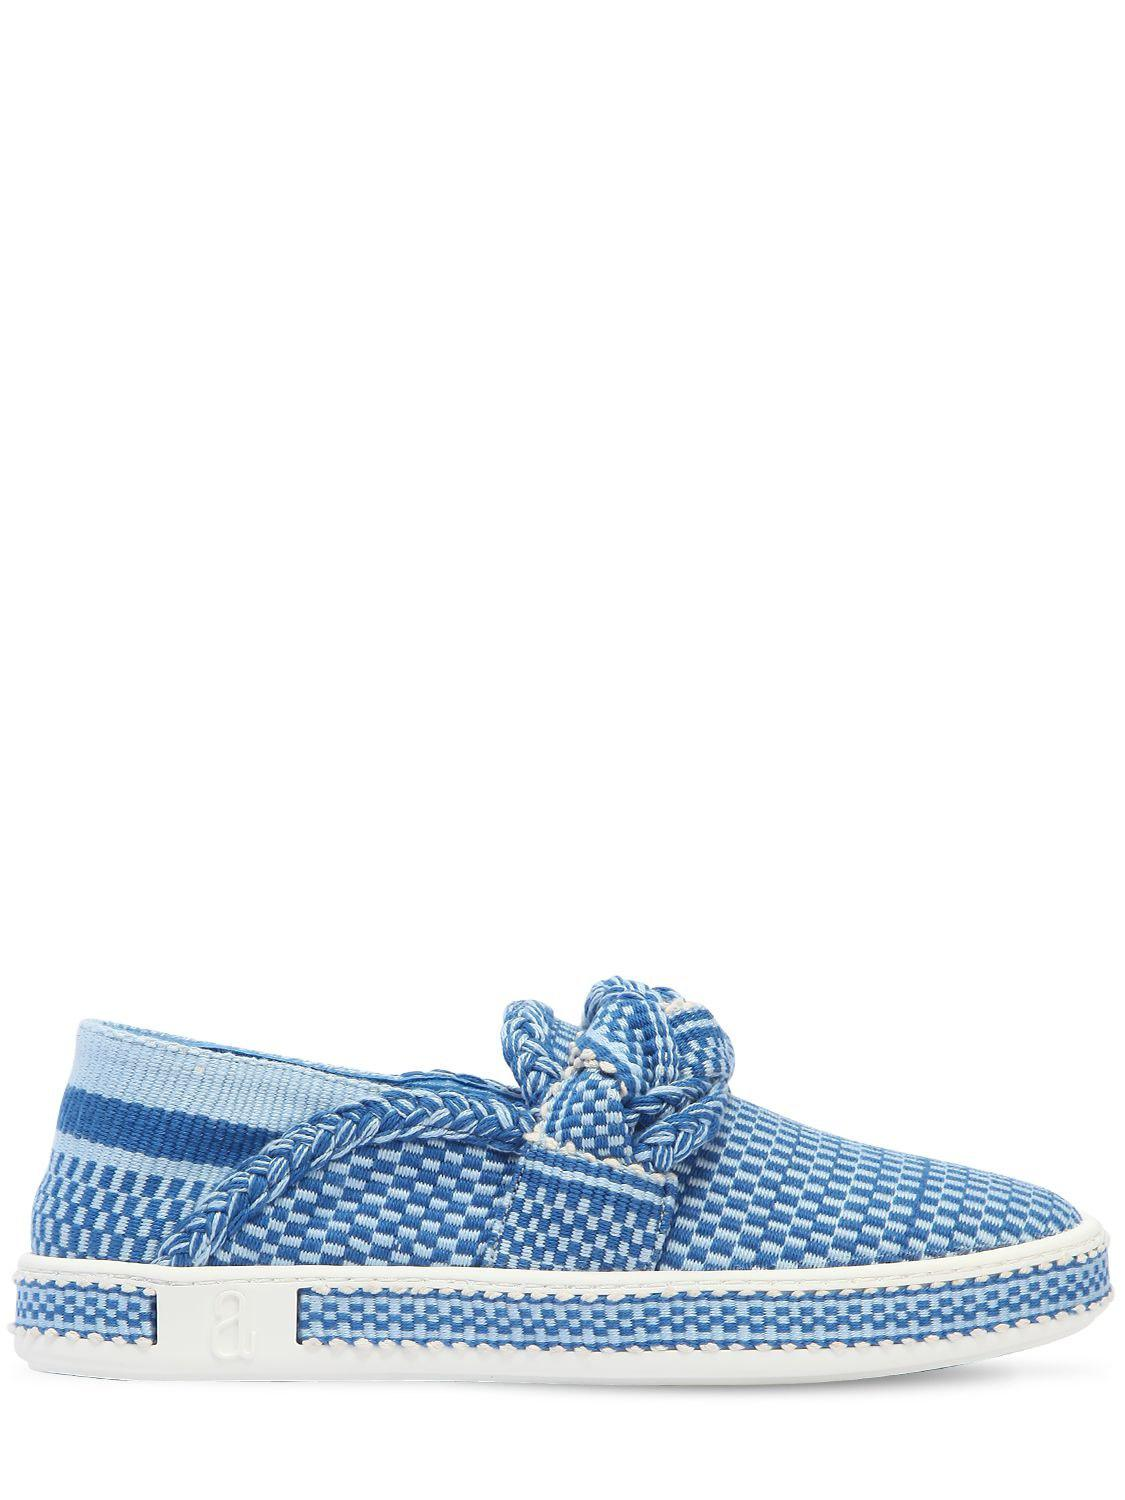 Blue Bird Shoesleather and cotton Eletric Love denim loafers Bon Service sortie En Ligne Finishline obtenir FCbqXDpdxK